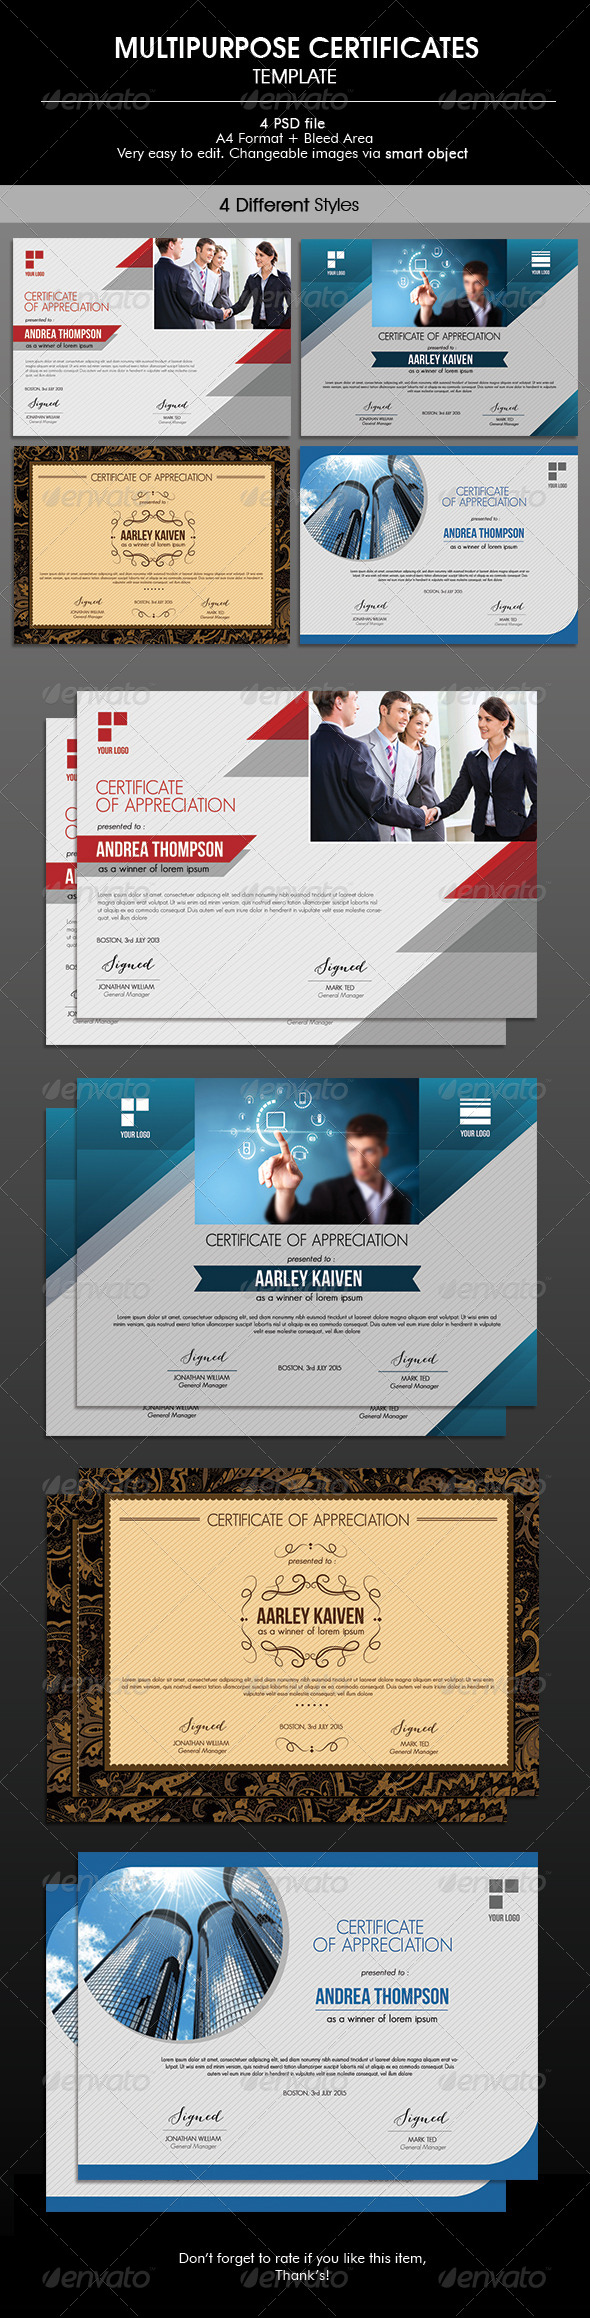 GraphicRiver Multipurpose Certificates 6717669